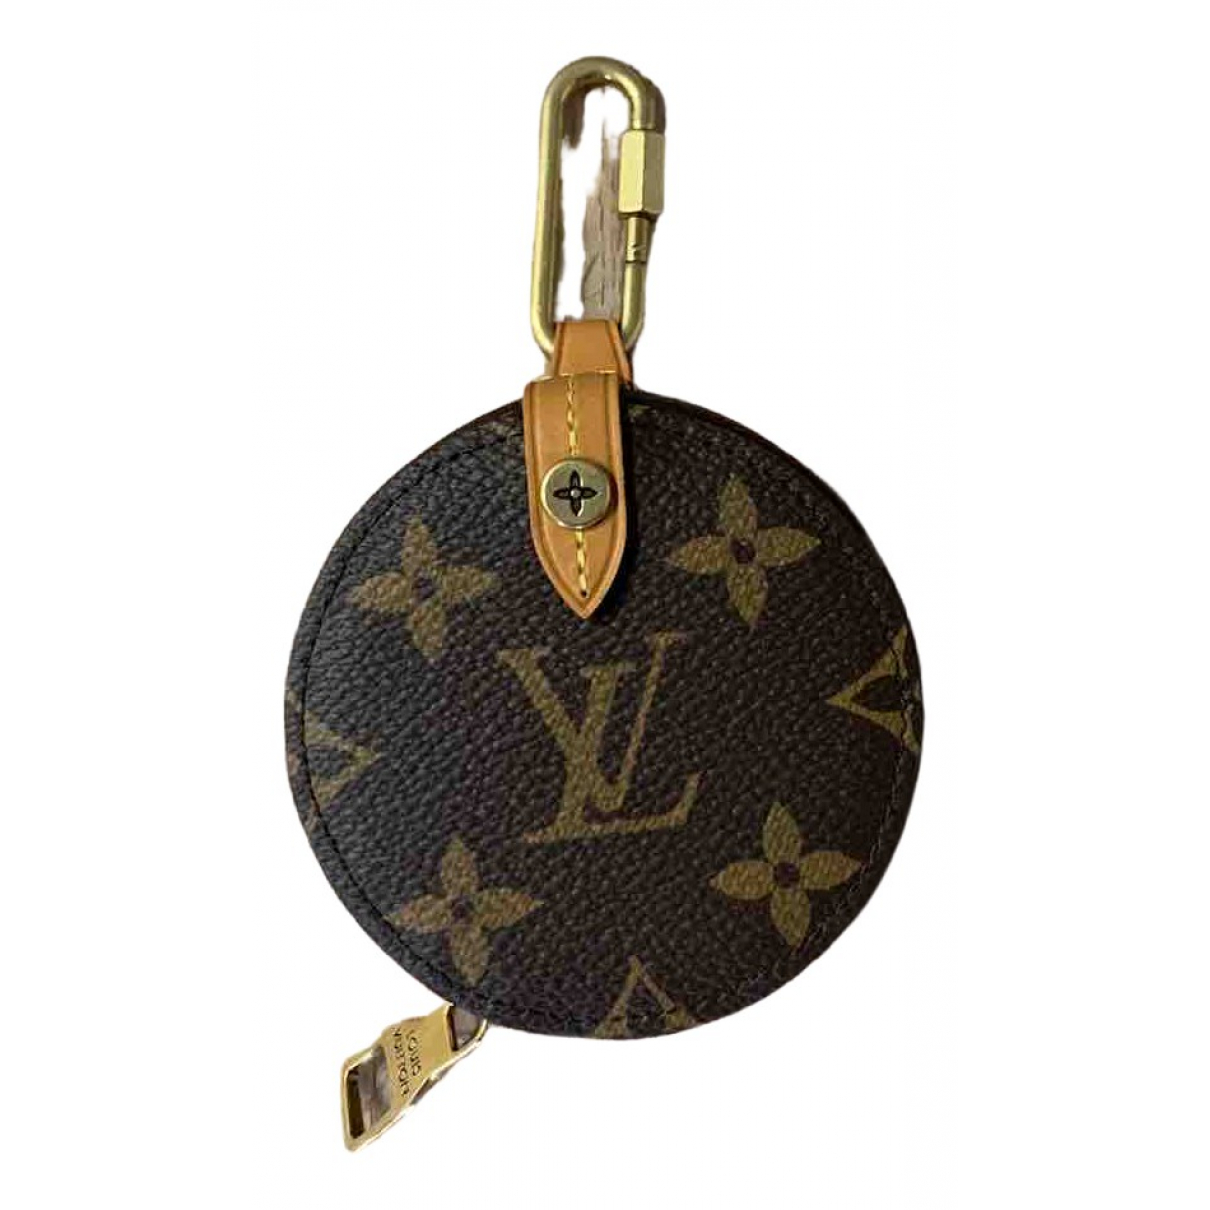 Marroquineria de Lona Louis Vuitton